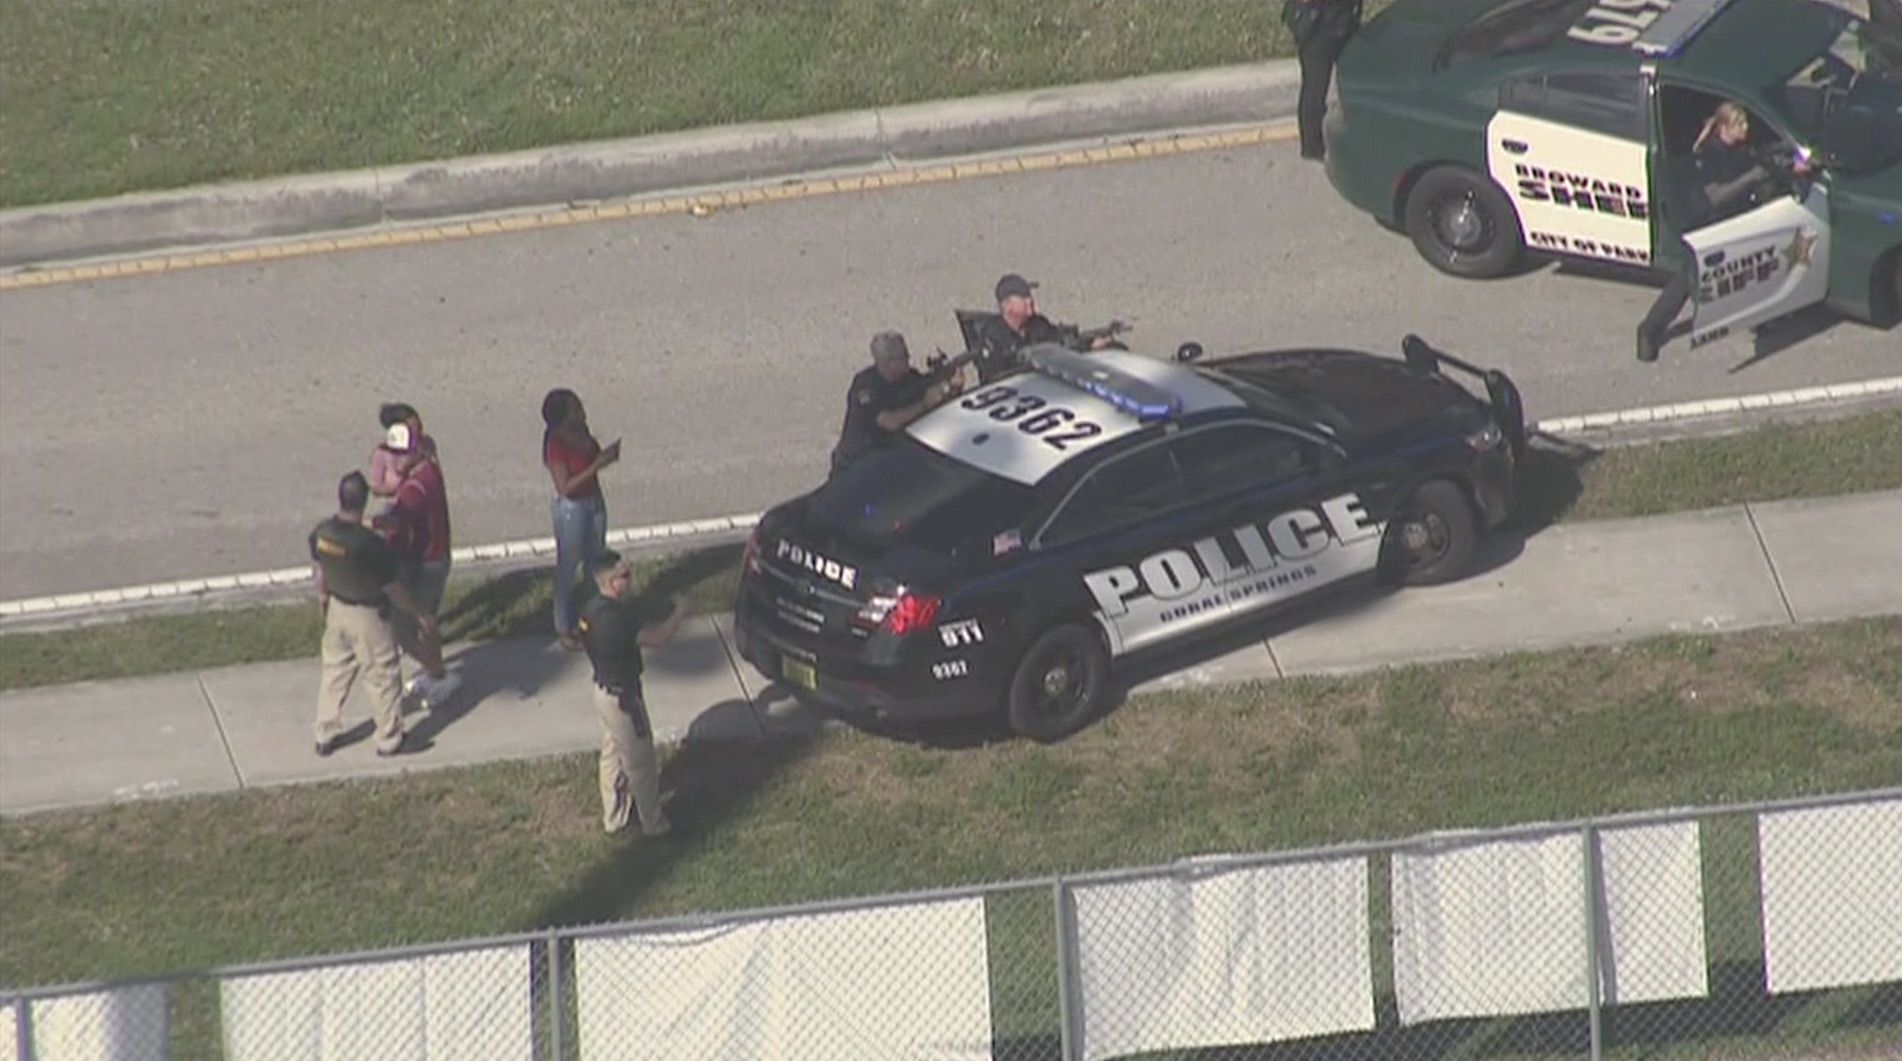 <div class='meta'><div class='origin-logo' data-origin='Creative Content'></div><span class='caption-text' data-credit='WSVN via CNN'>Authorities are responding to reports of shots fired at a Florida high school.</span></div>